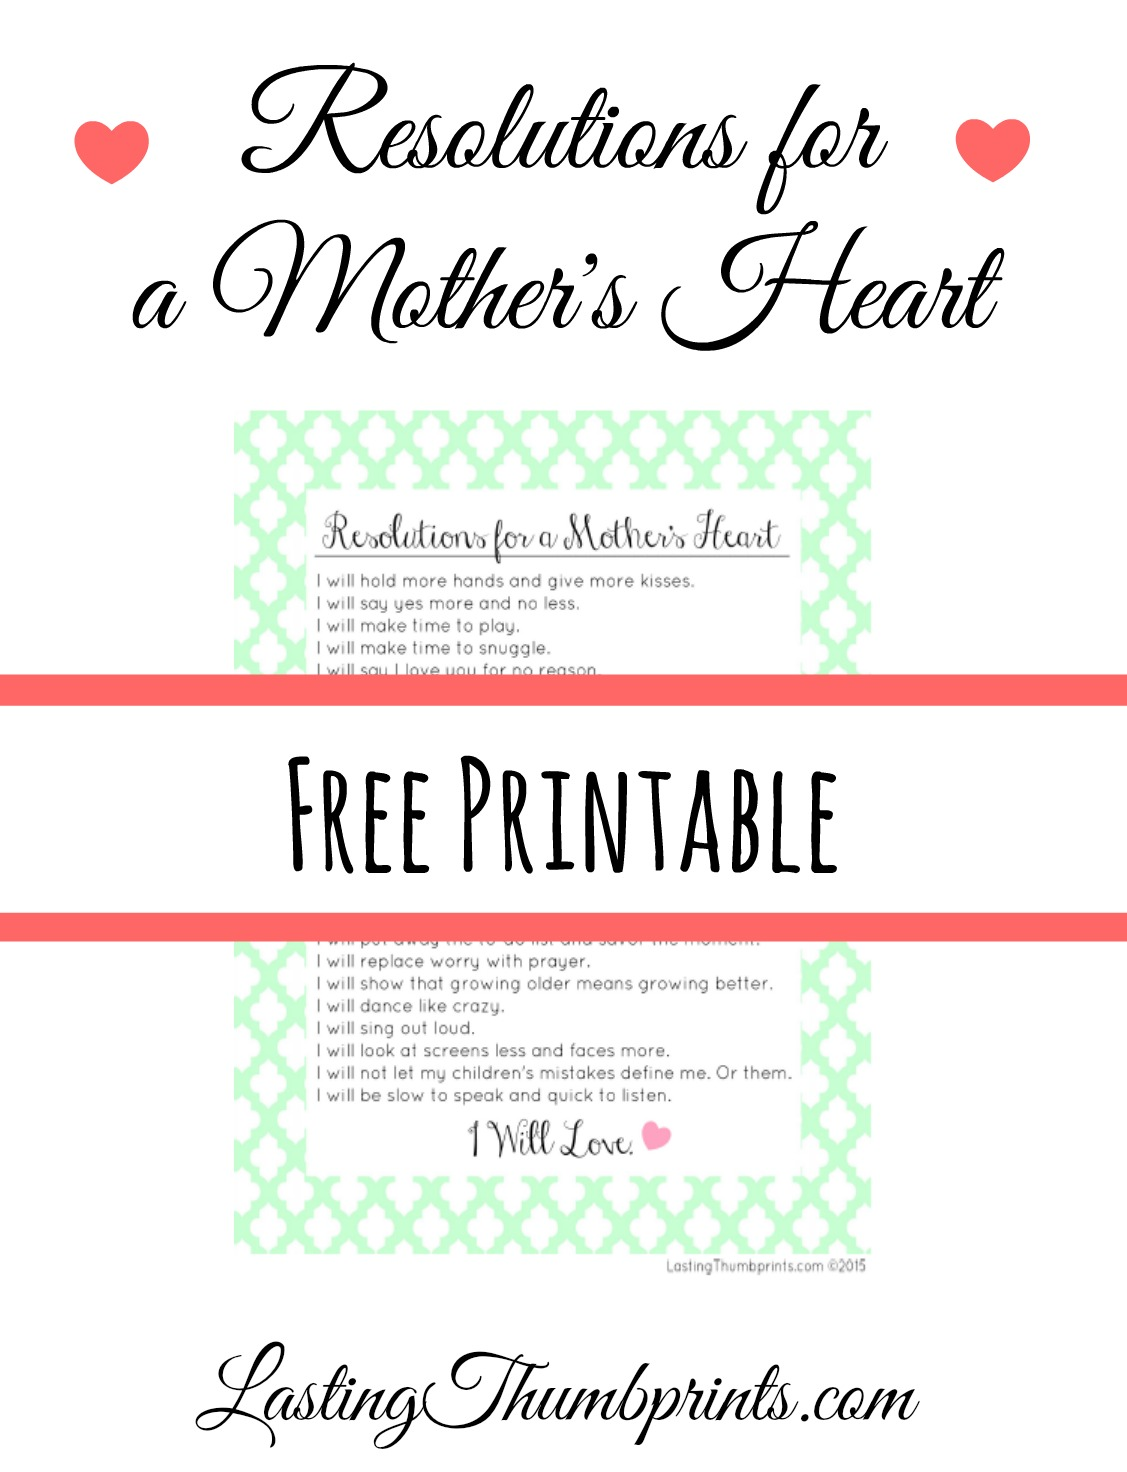 Resolutions for a Mother's Heart - Free Printable!